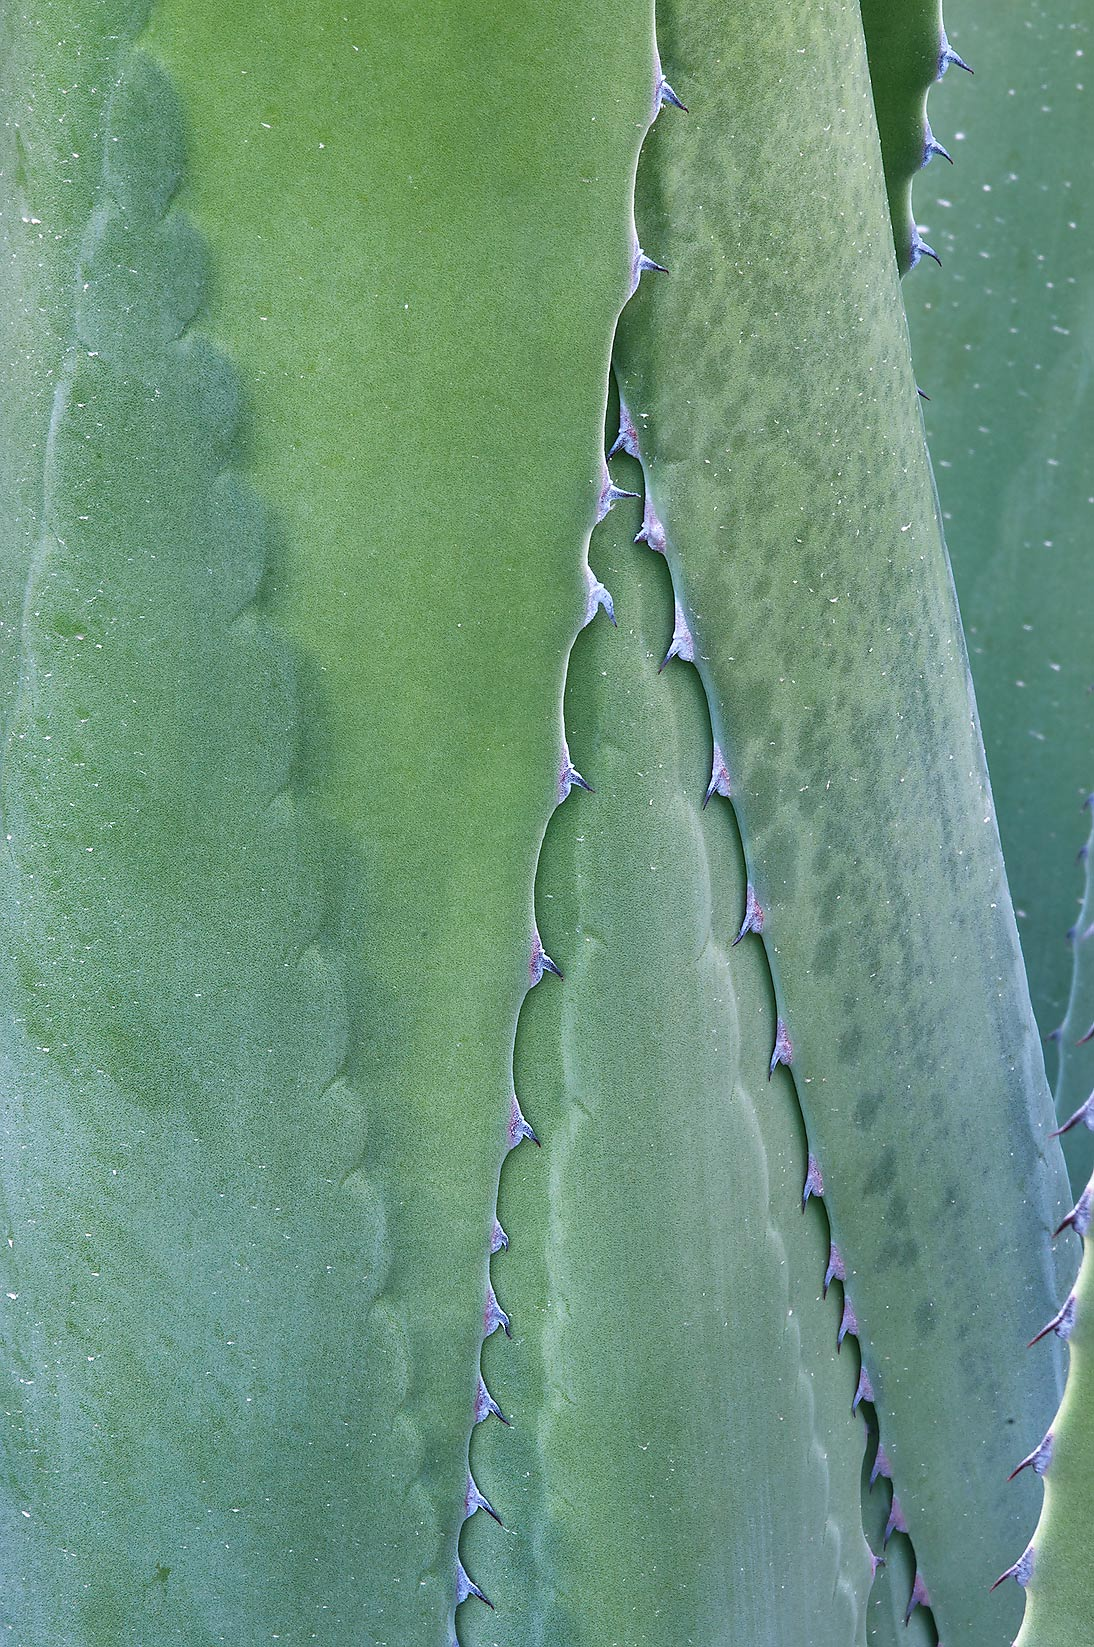 Leaf texture of Mexican agave in TAMU Holistic...M University. College Station, Texas